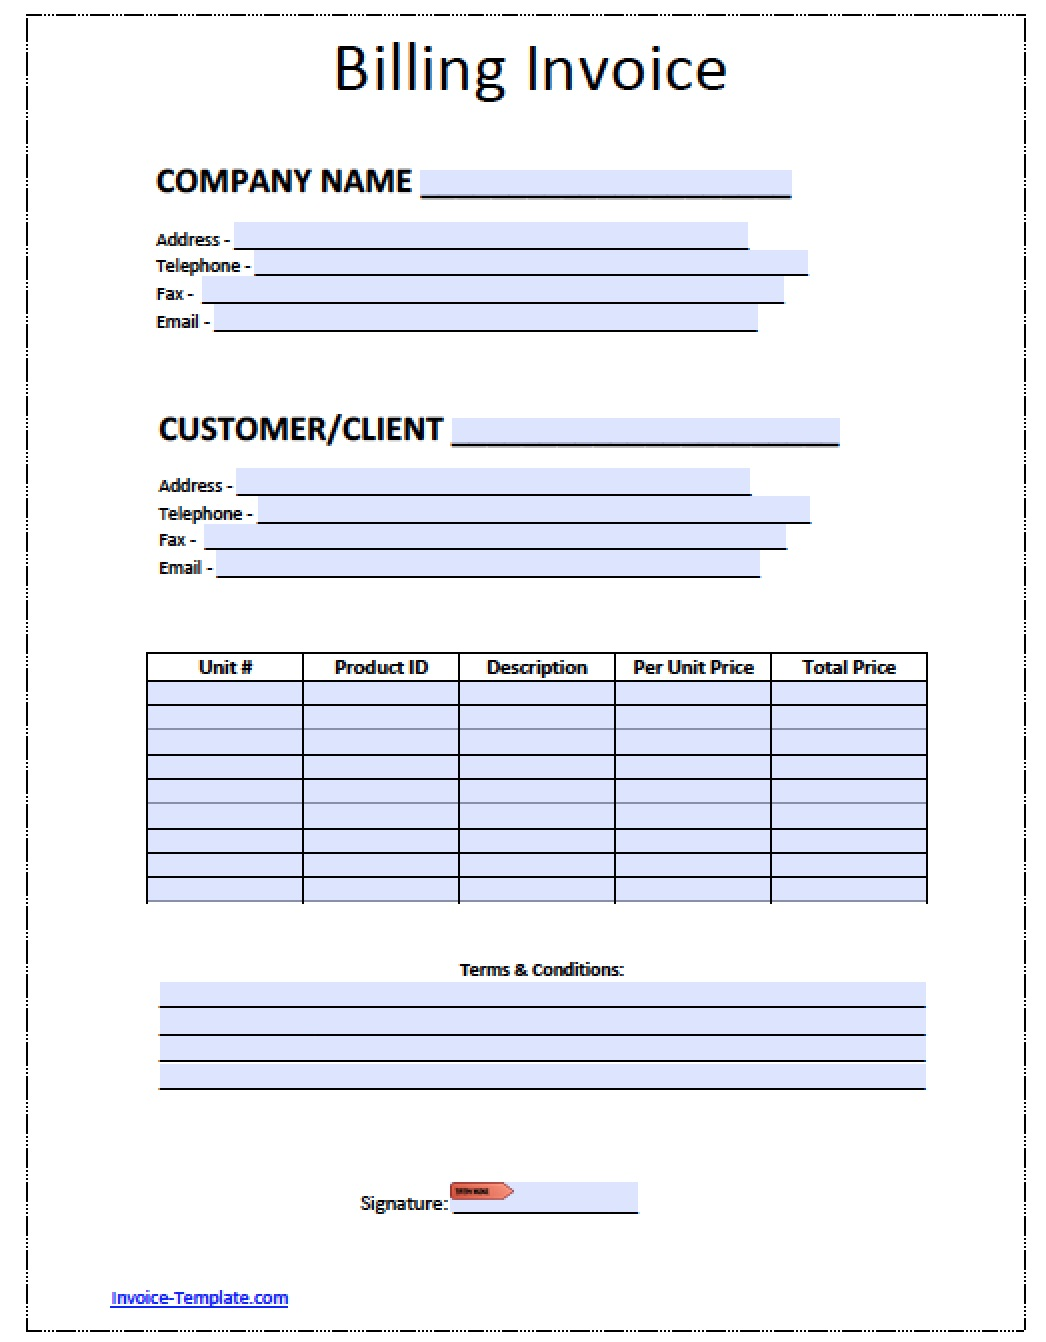 Imagerackus  Unusual Billing Invoice Invoices Faq U Cloudflare Support Billing  With Licious Free Billing Invoice Template  Excel  Pdf  Word Doc  Billing With Delectable Importing Invoices Into Quickbooks Also Virtually There Einvoice In Addition How To Create Invoices In Quickbooks And Invoice For As Well As Business Invoice Finance Additionally Microsoft Invoice Template Free From Happytomco With Imagerackus  Licious Billing Invoice Invoices Faq U Cloudflare Support Billing  With Delectable Free Billing Invoice Template  Excel  Pdf  Word Doc  Billing And Unusual Importing Invoices Into Quickbooks Also Virtually There Einvoice In Addition How To Create Invoices In Quickbooks From Happytomco